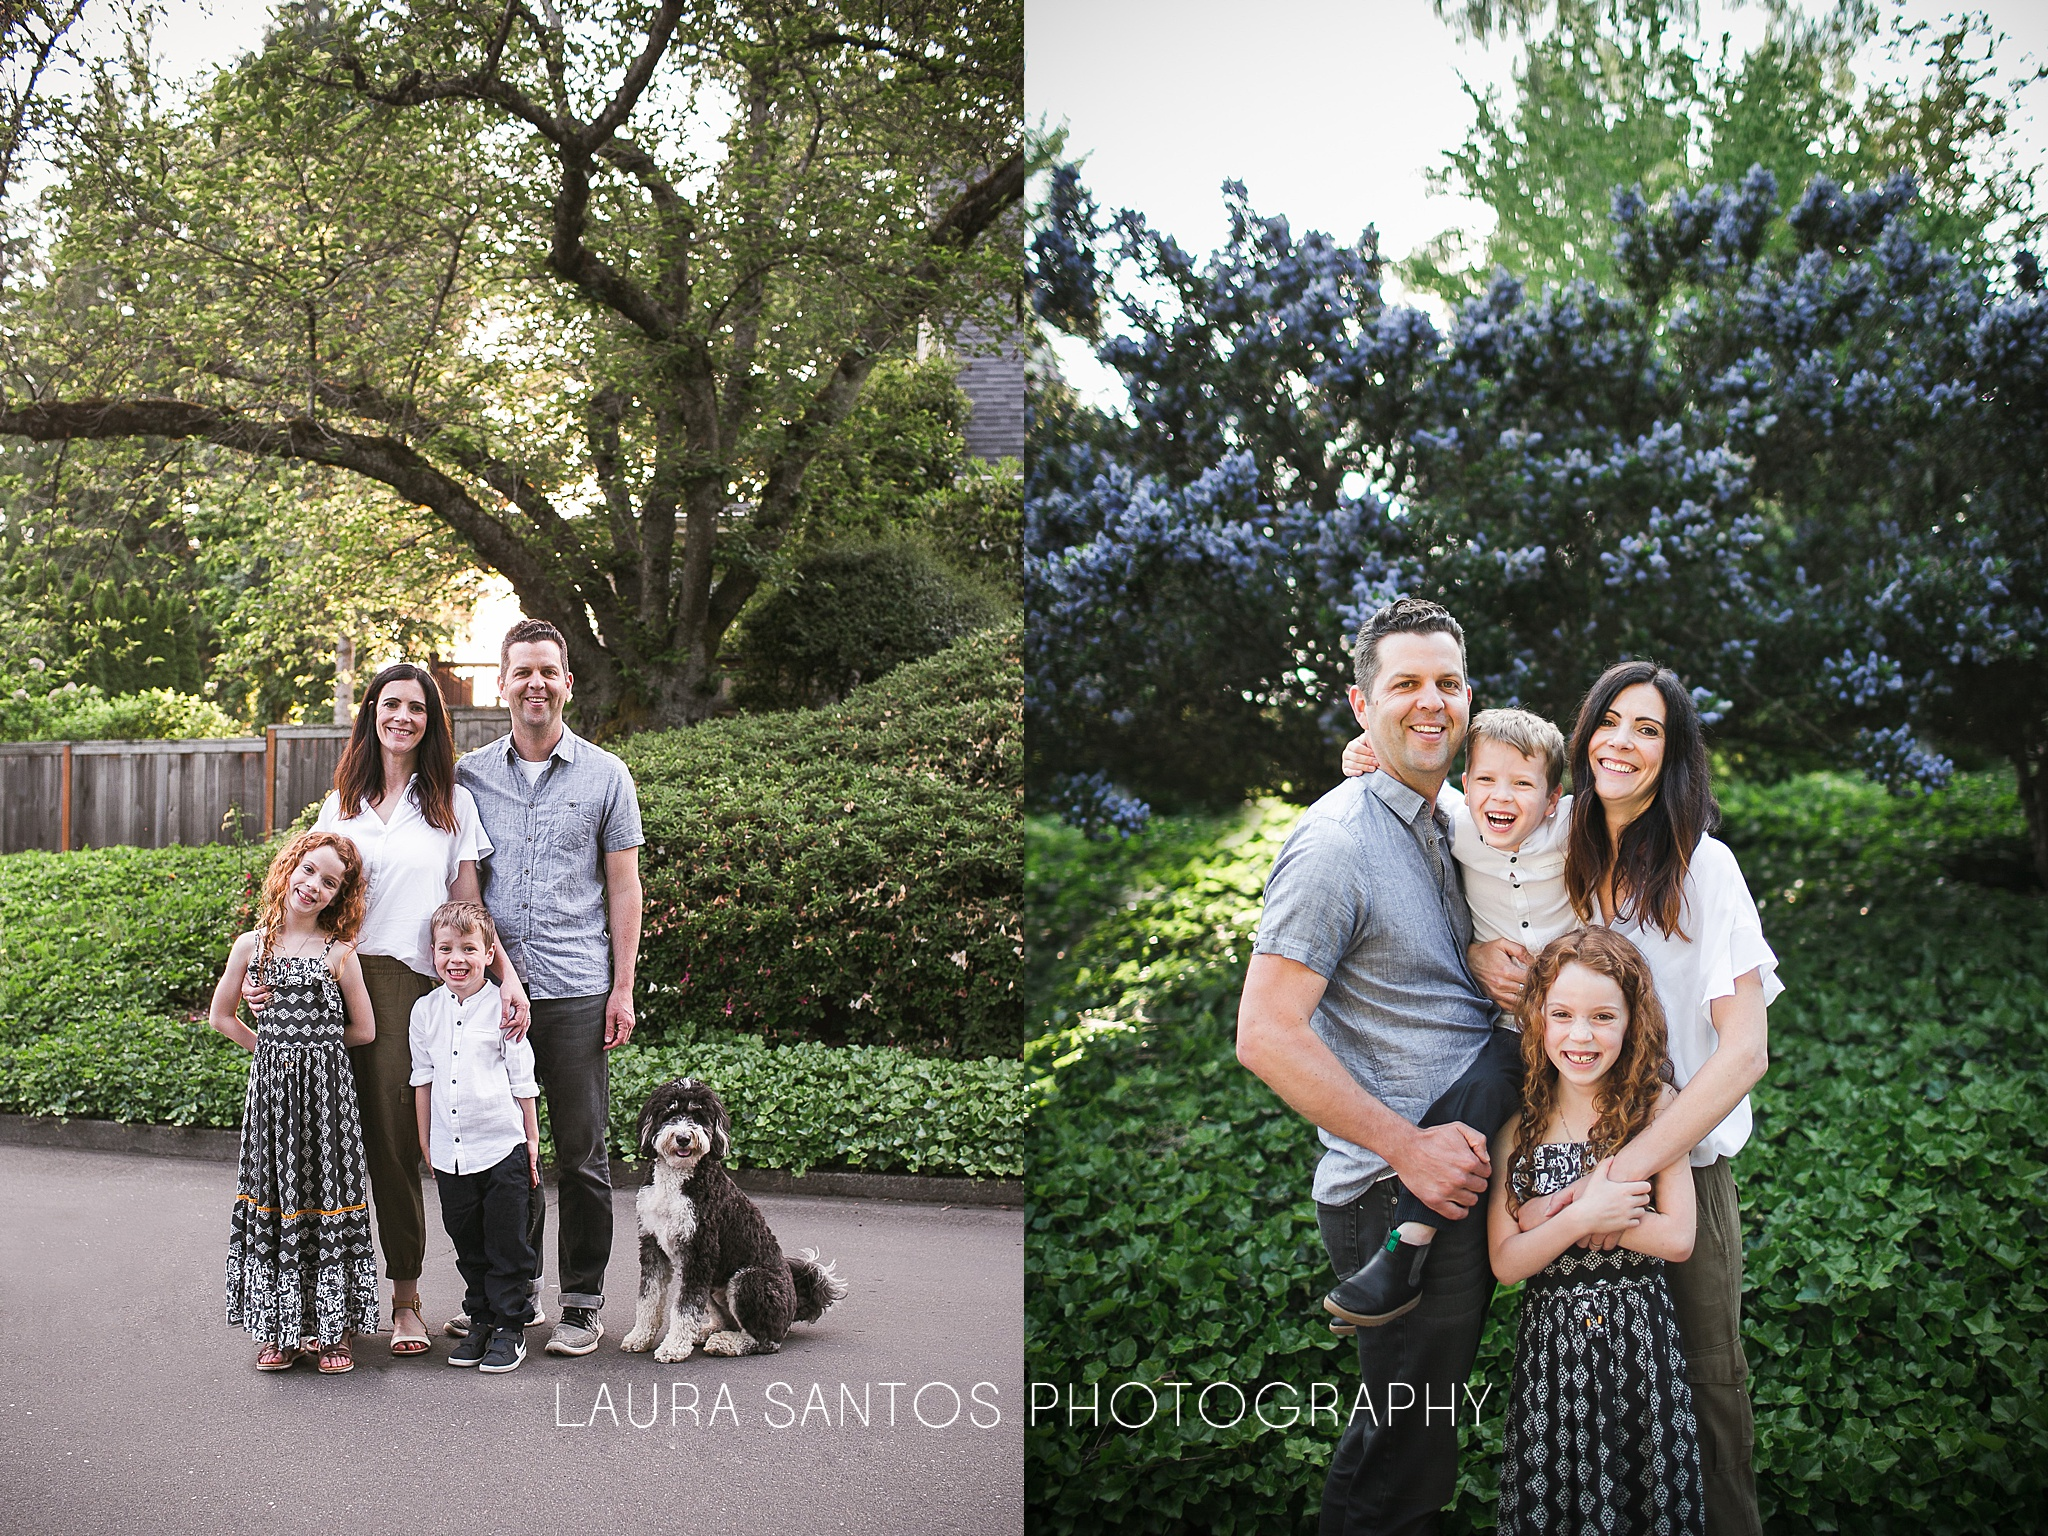 Laura Santos Photography Portland Oregon Family Photographer_0974.jpg